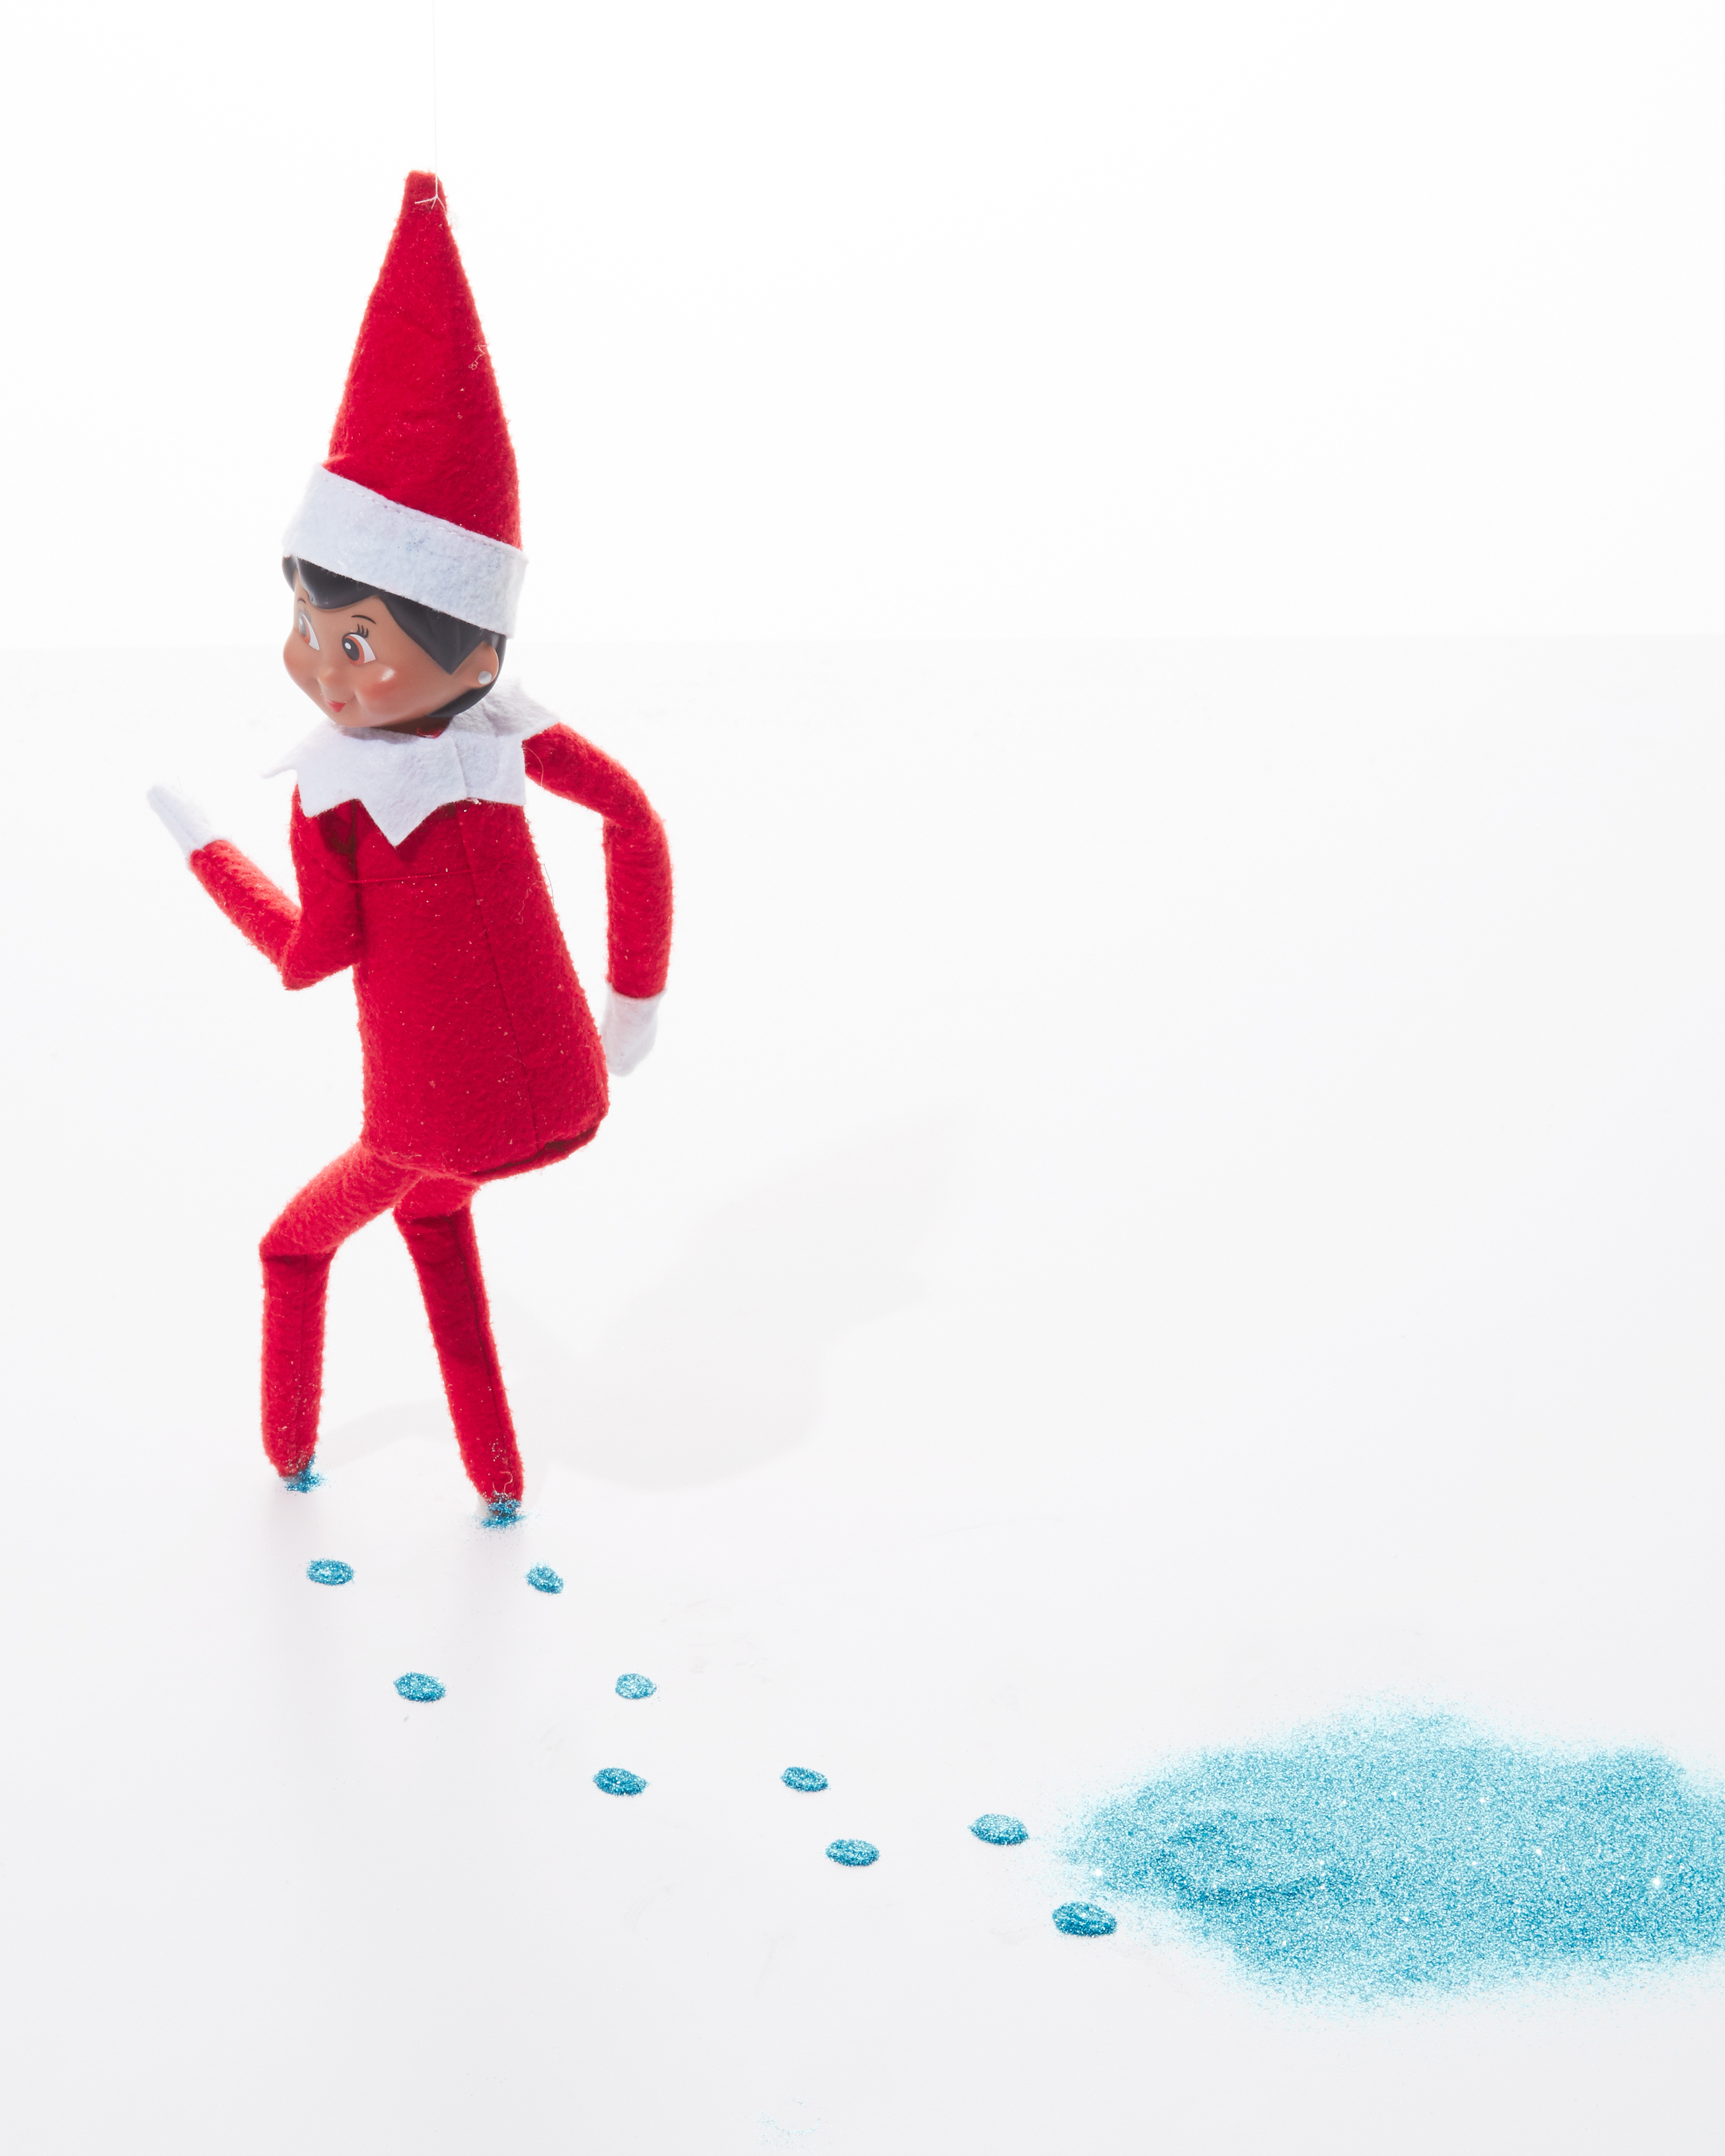 elf-on-shelf-glitter-0275-d112640-1215.jpg